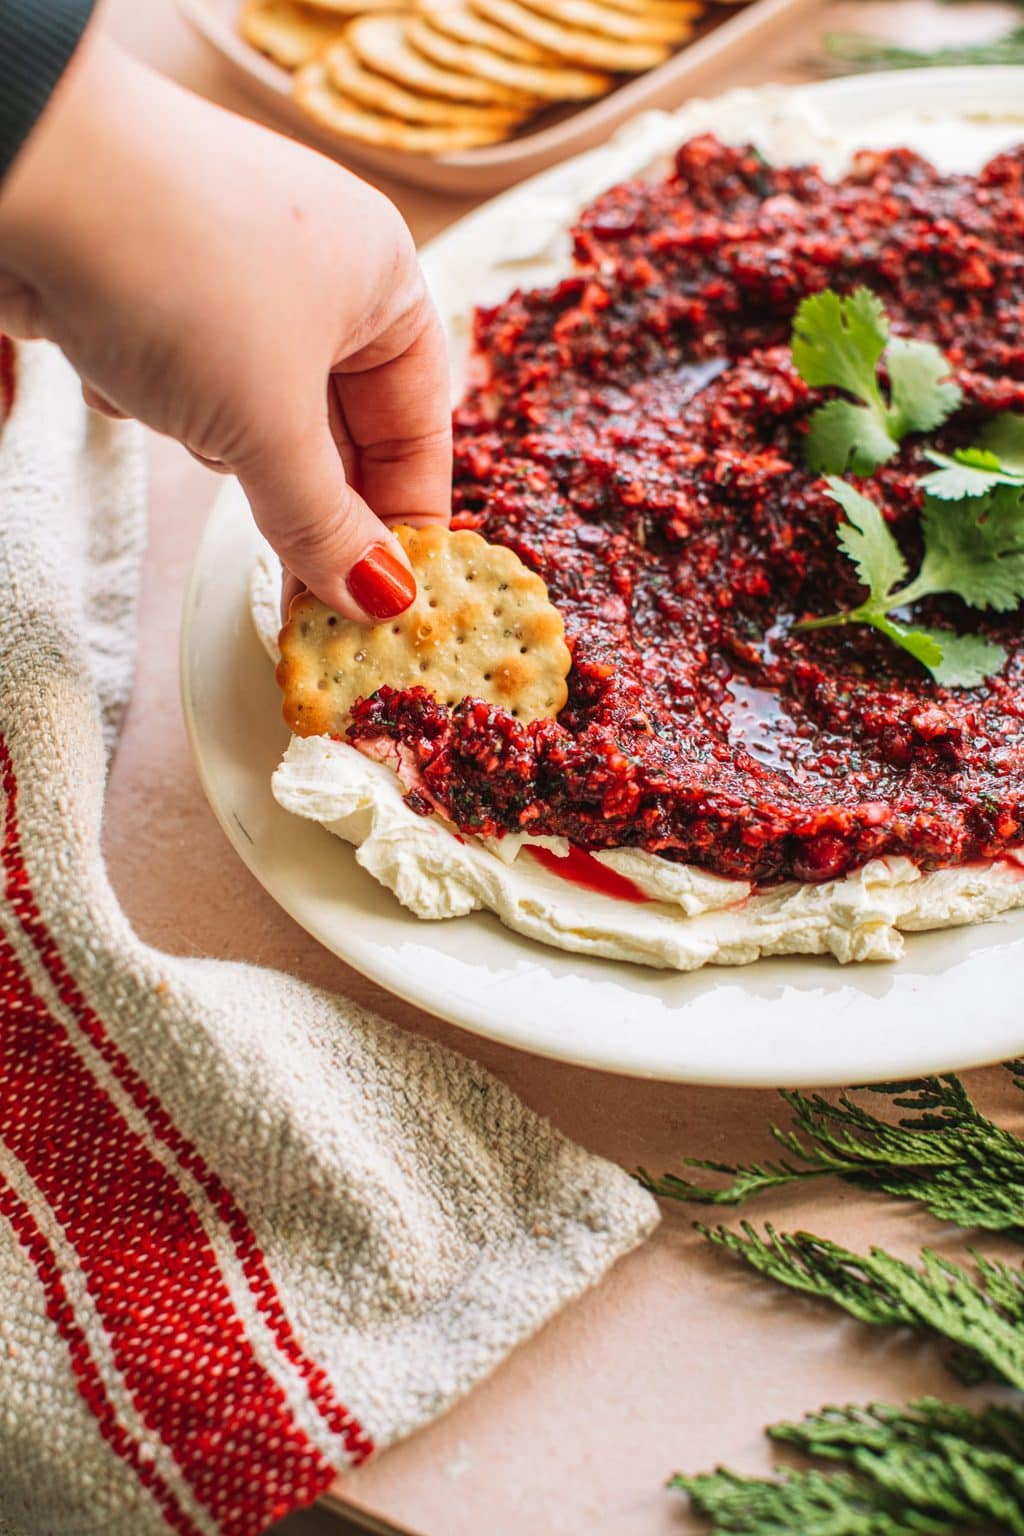 Hand dipping cracker in red jalapeno cranberry dip with cream cheese spread on white plate next to dish of crackers